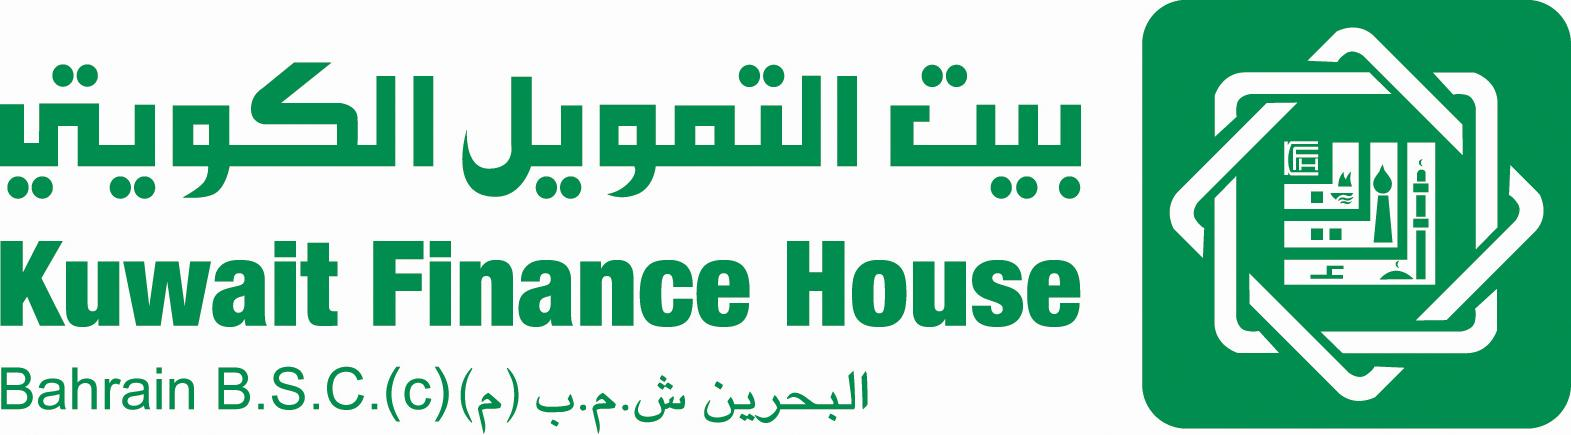 Kuwait Finance House Logo